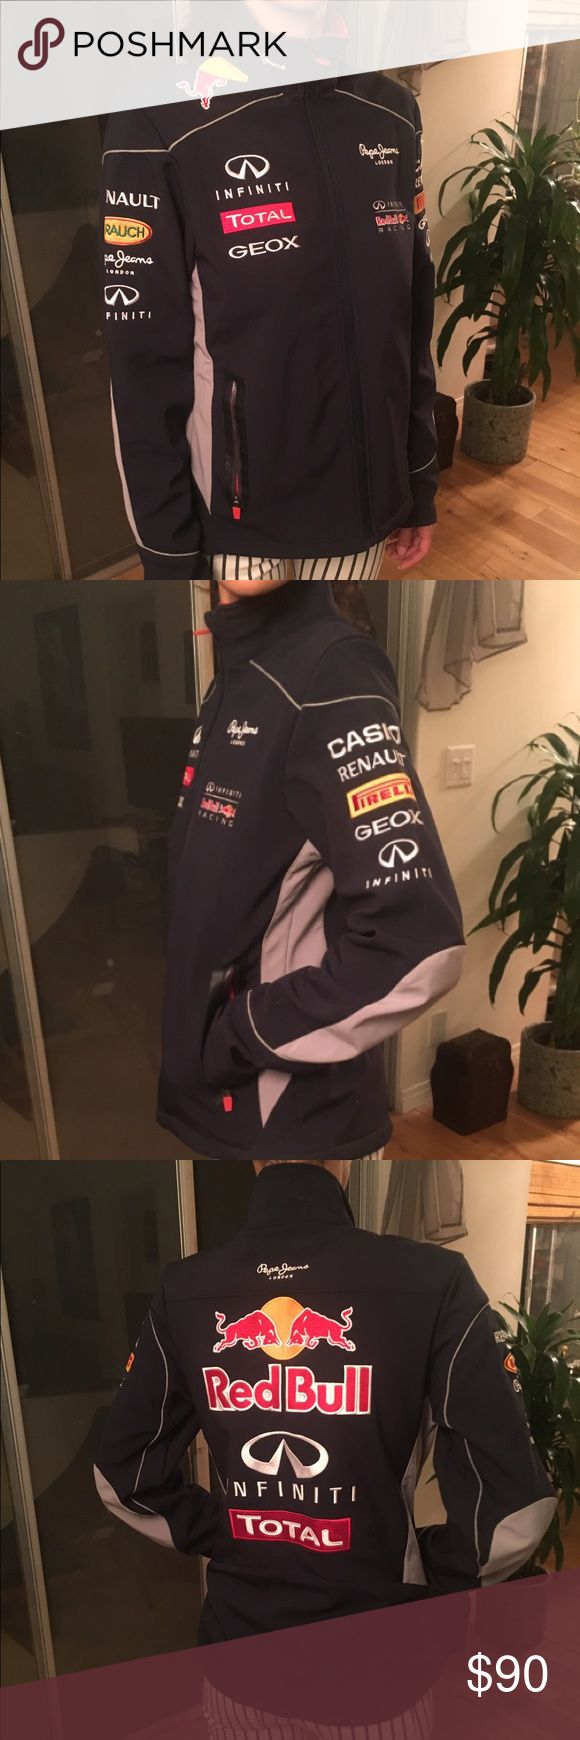 Formula One Infiniti Red Bull Racing Jacket Vettel Perfect for a true Formula One Racing Fan! This is the real deal! Official Navy Formula One Infiniti Red Bull Racing Jacket! Jackets & Coats Utility Jackets